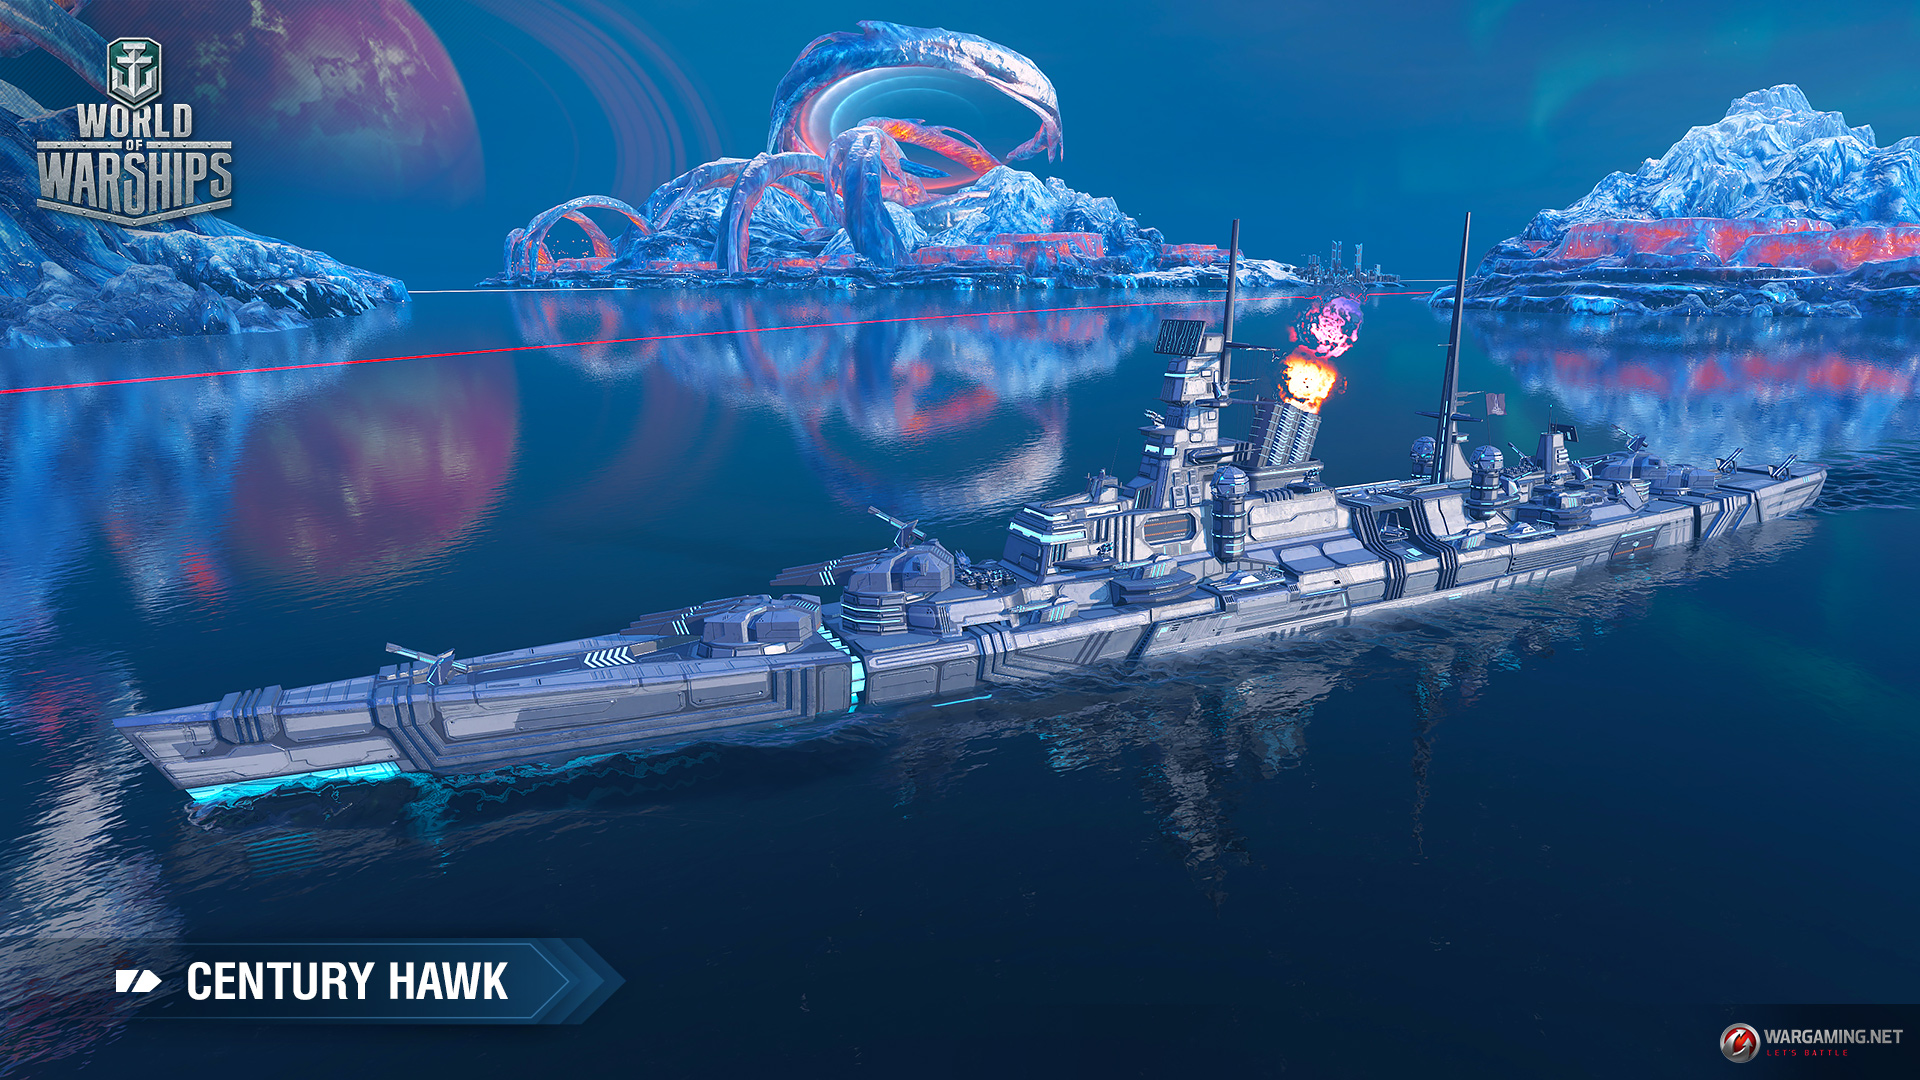 WG_WoWS_SPb_Screenshots_082_Century_Hawk_1920x1080